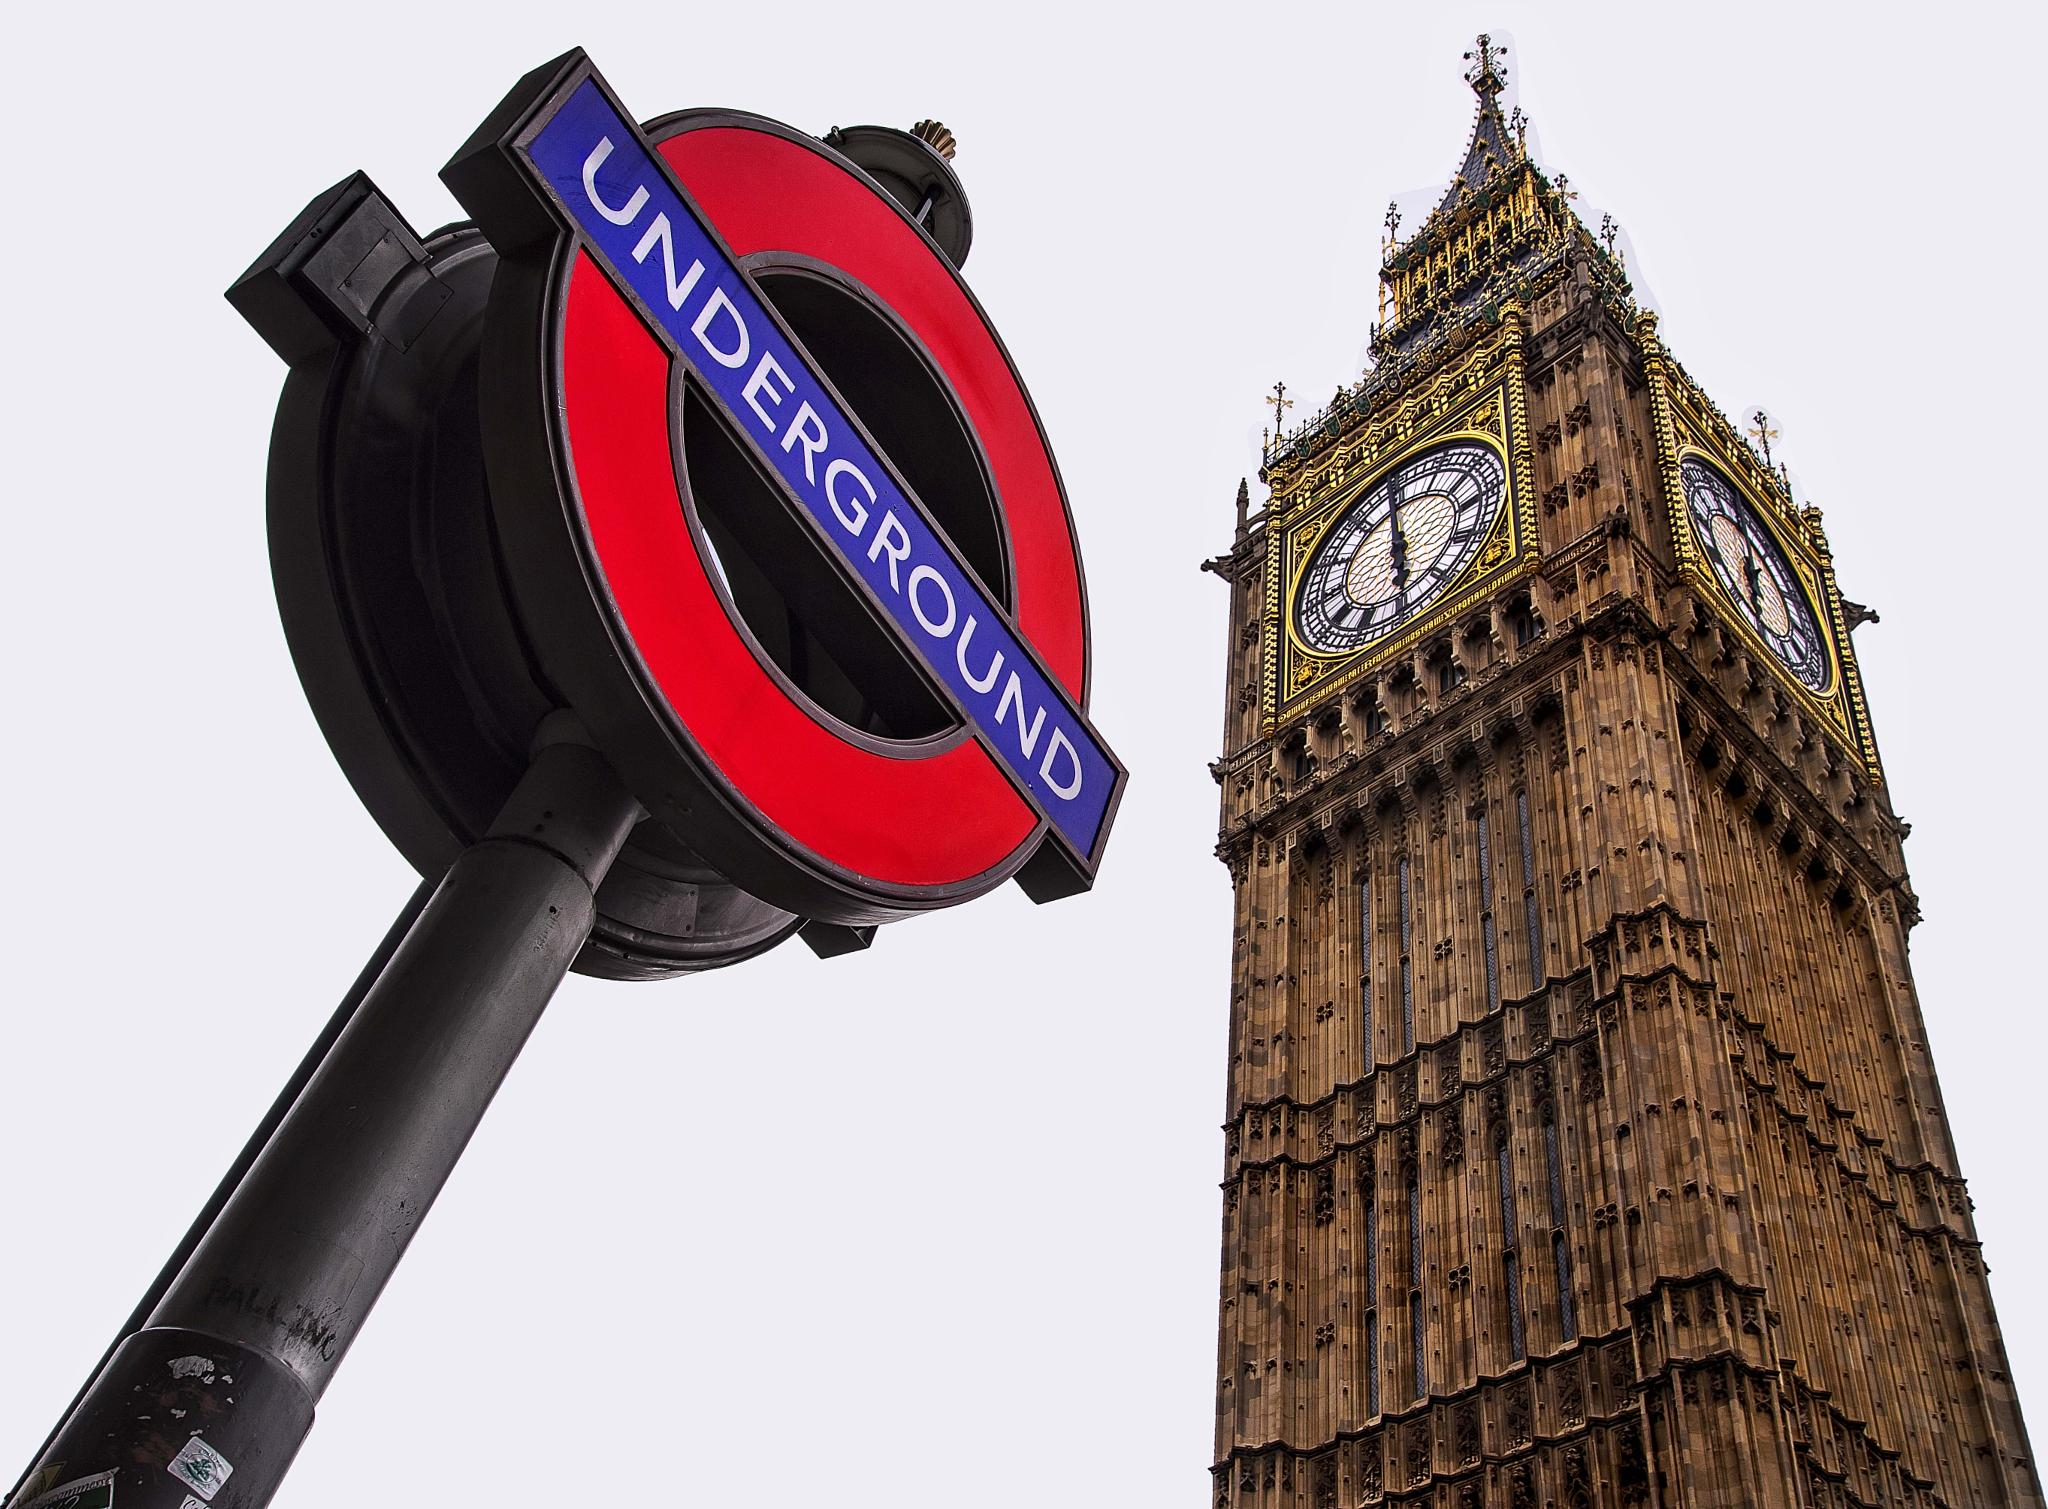 Big Ben and tubesign, London by catoh2